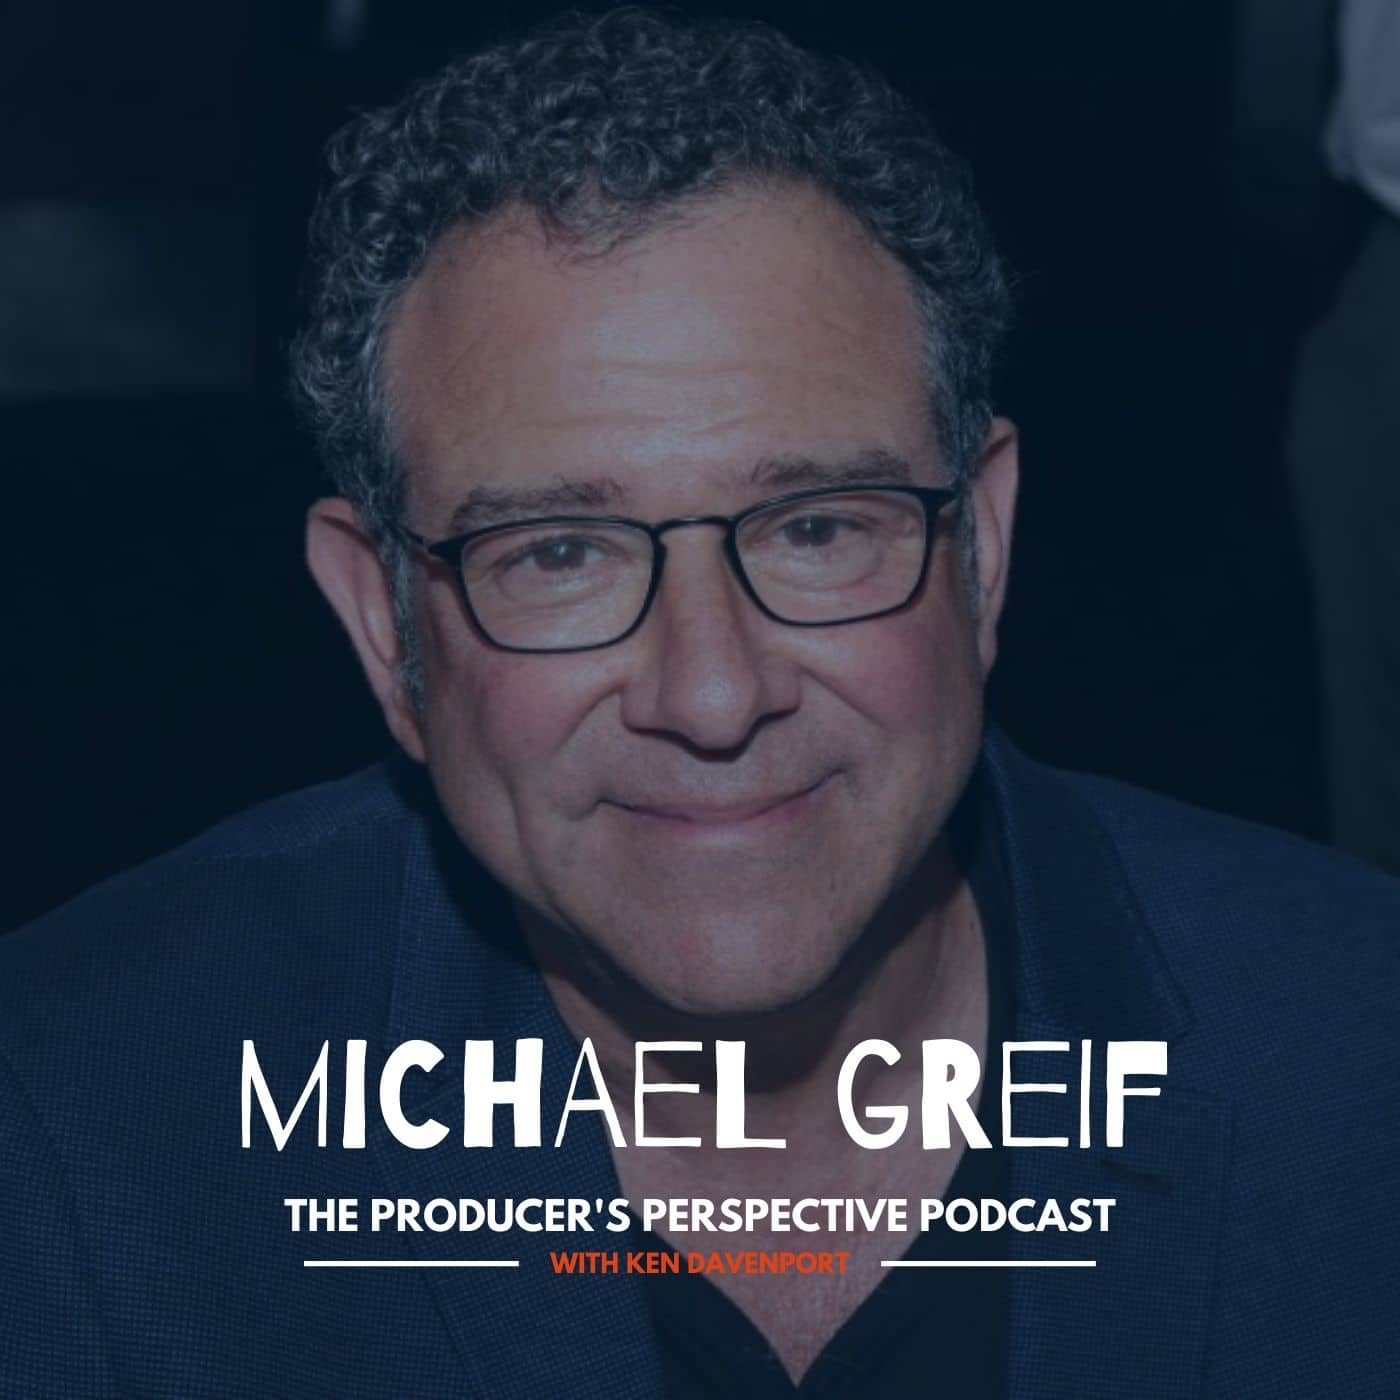 Ken Davenport's The Producer's Perspective Podcast Episode 164 - Michael Greif